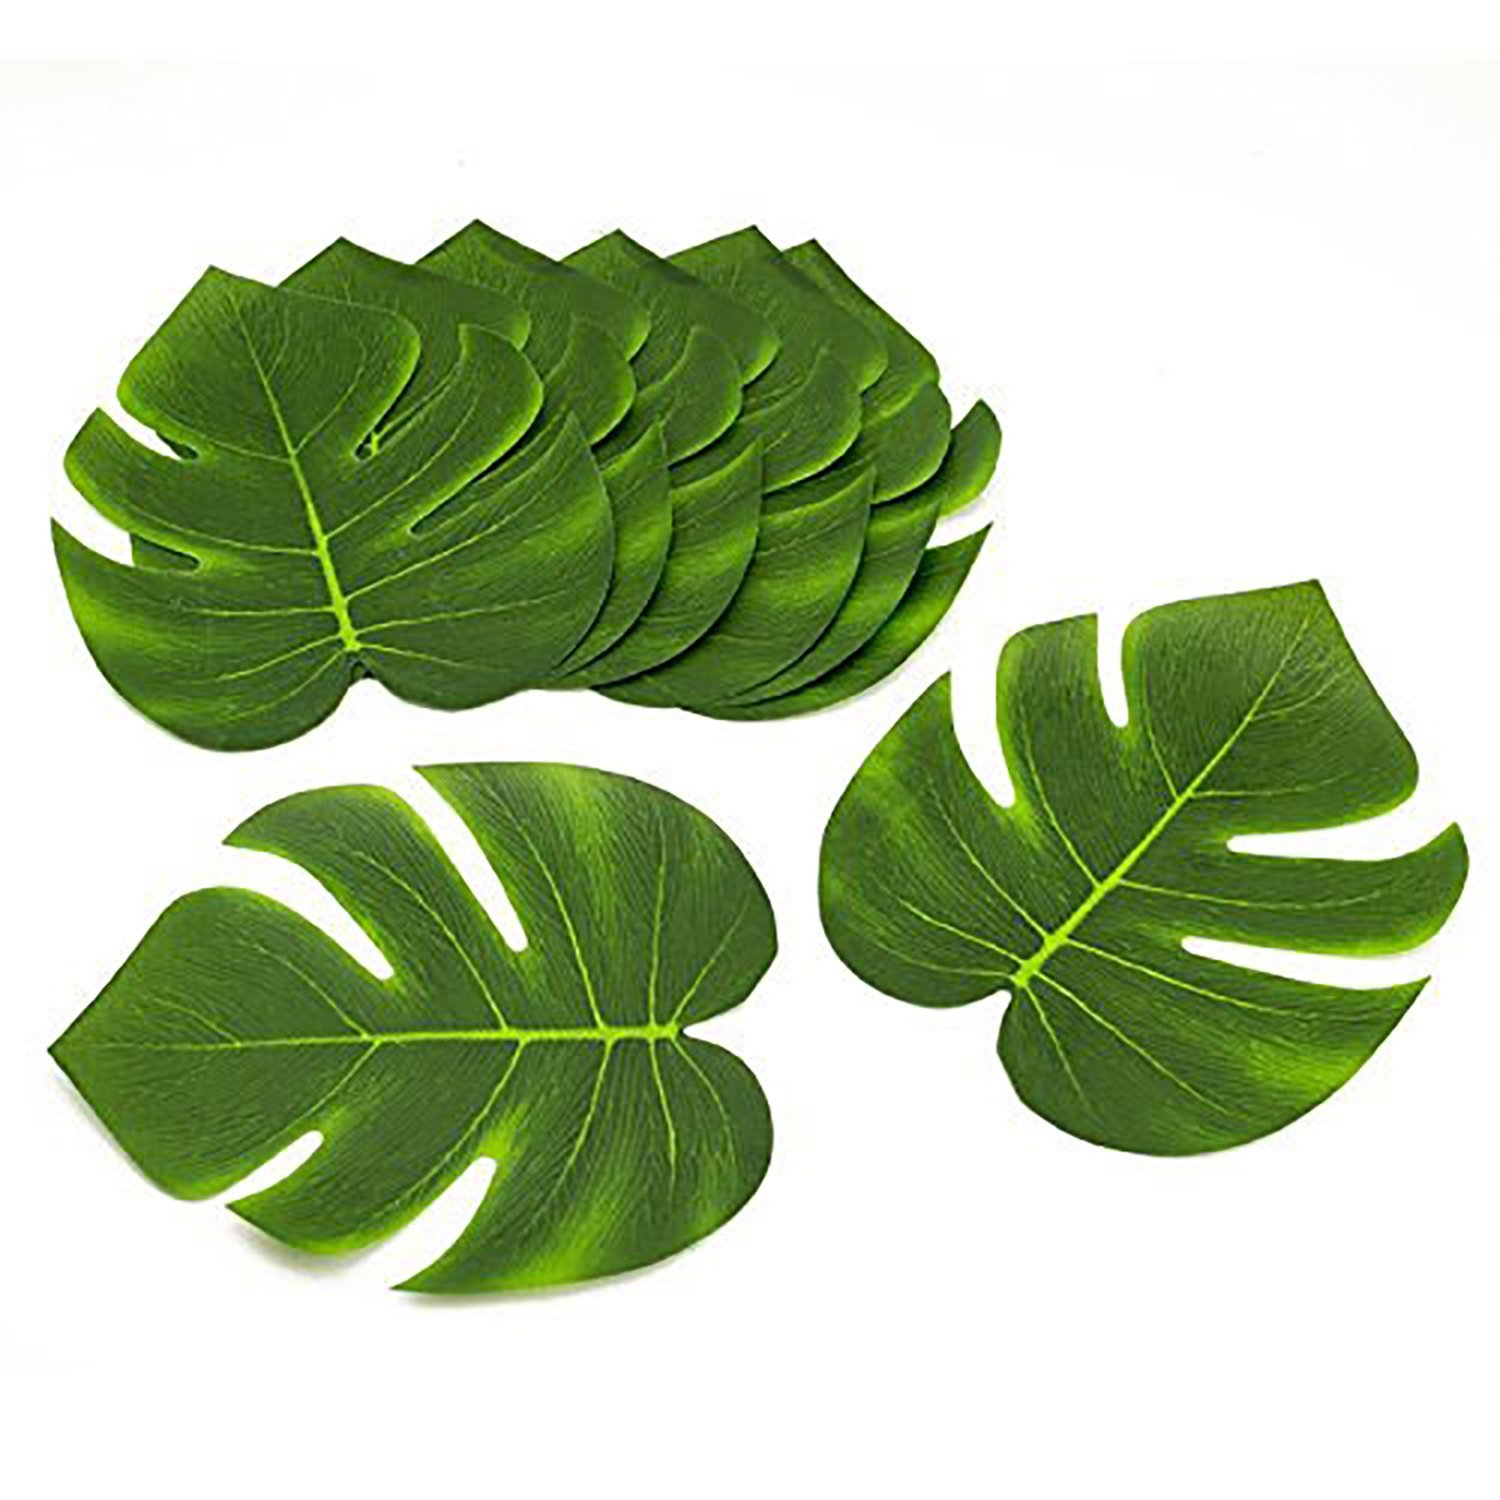 Coated Fabric Artificial Tropical Green Plant Leaves Hawaiian Luau Party Decoration (Set of 24 leaves), Perfect for a Hawaiian themed event. By Tytroy